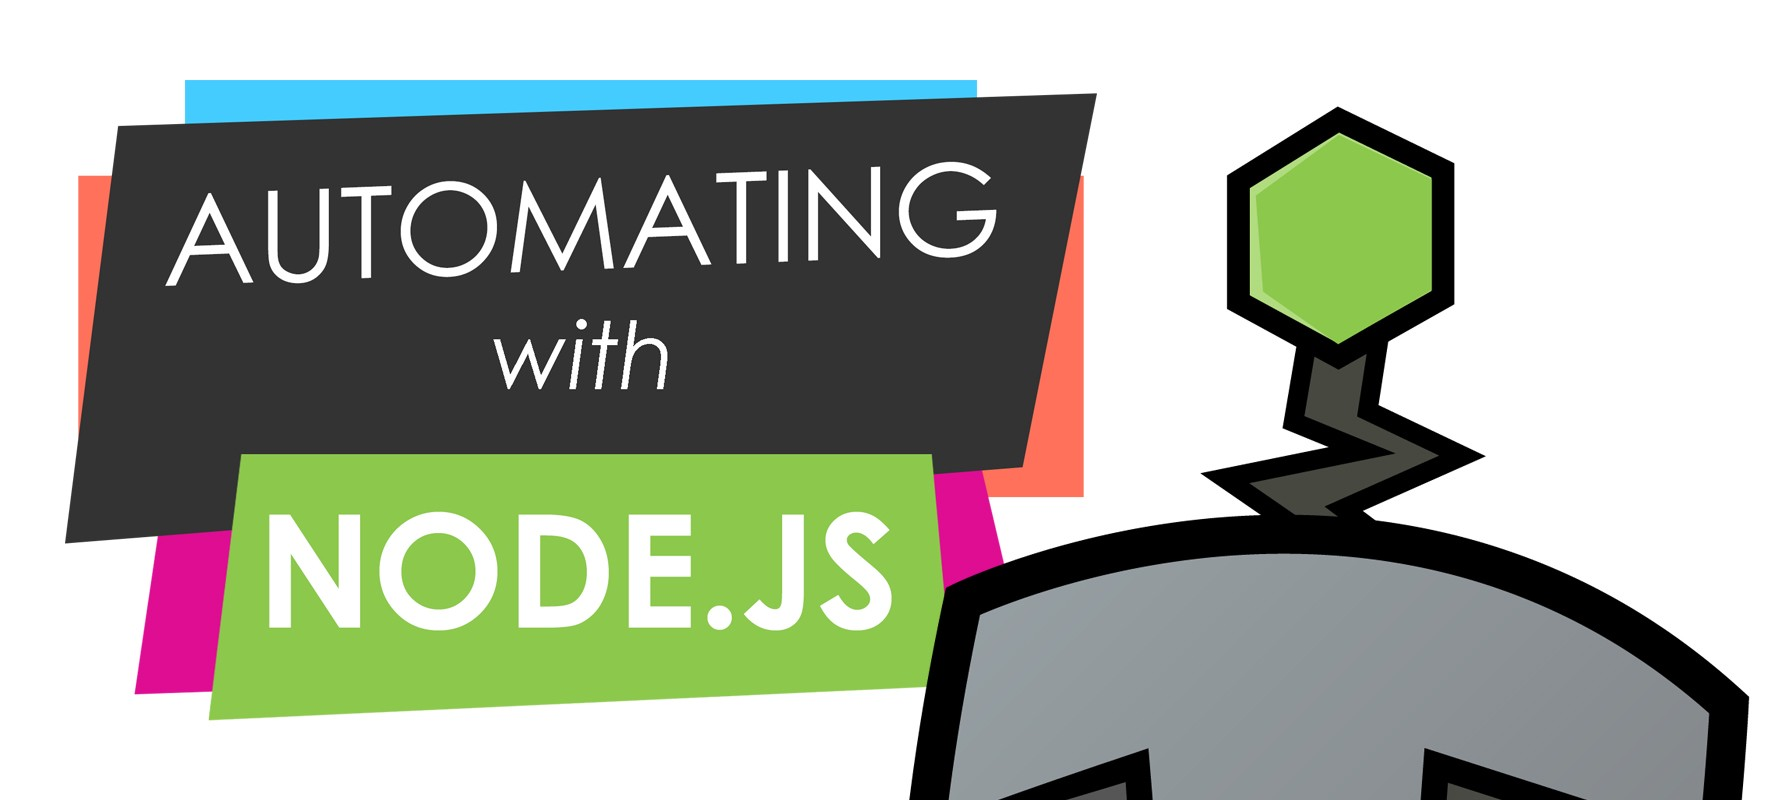 How I automated my job with Node js - DailyJS - Medium